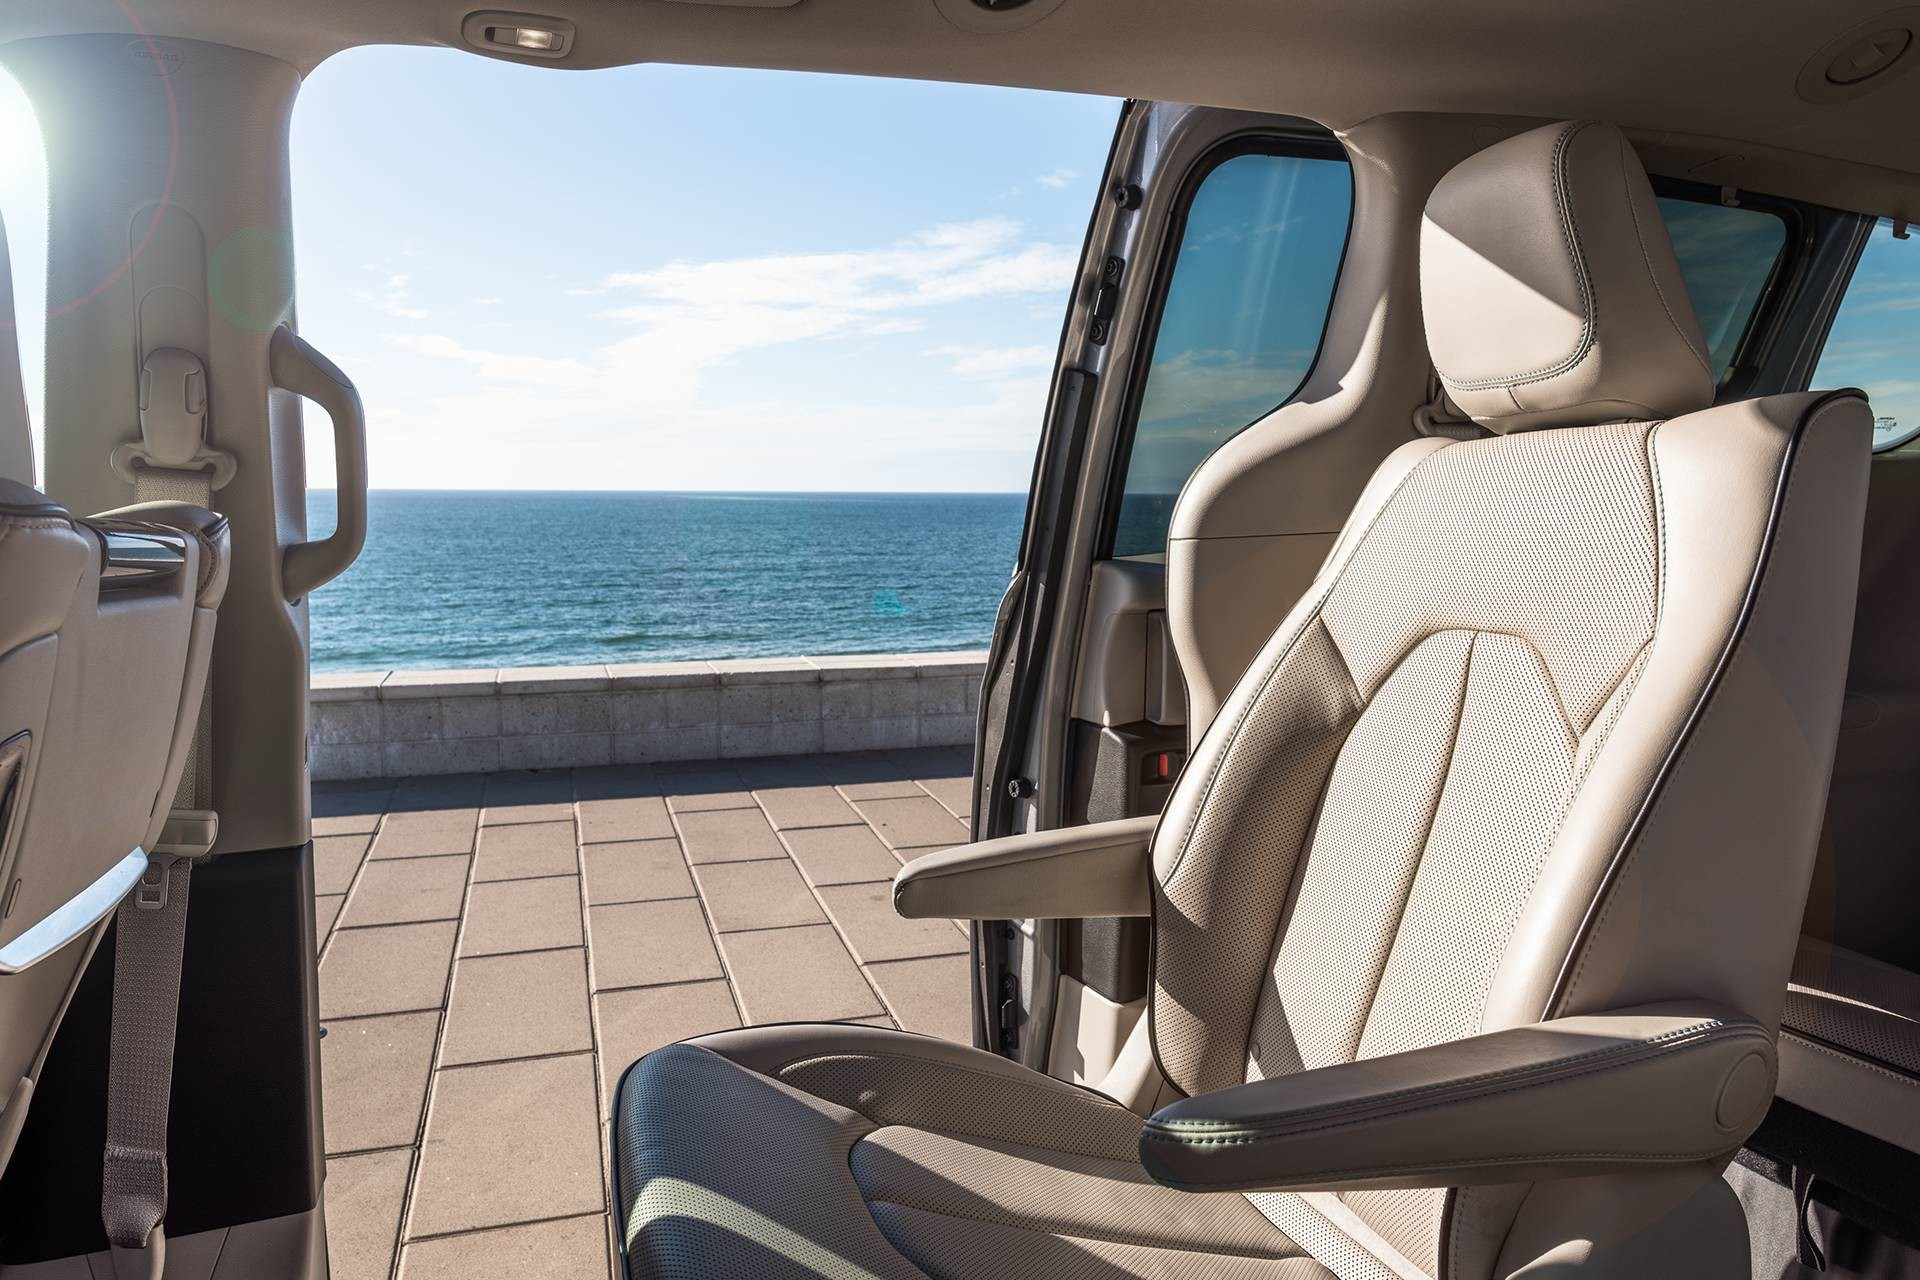 2019 Chrysler Pacifica Hybrid interior showing 2nd-row bucket seats and power sliding doors